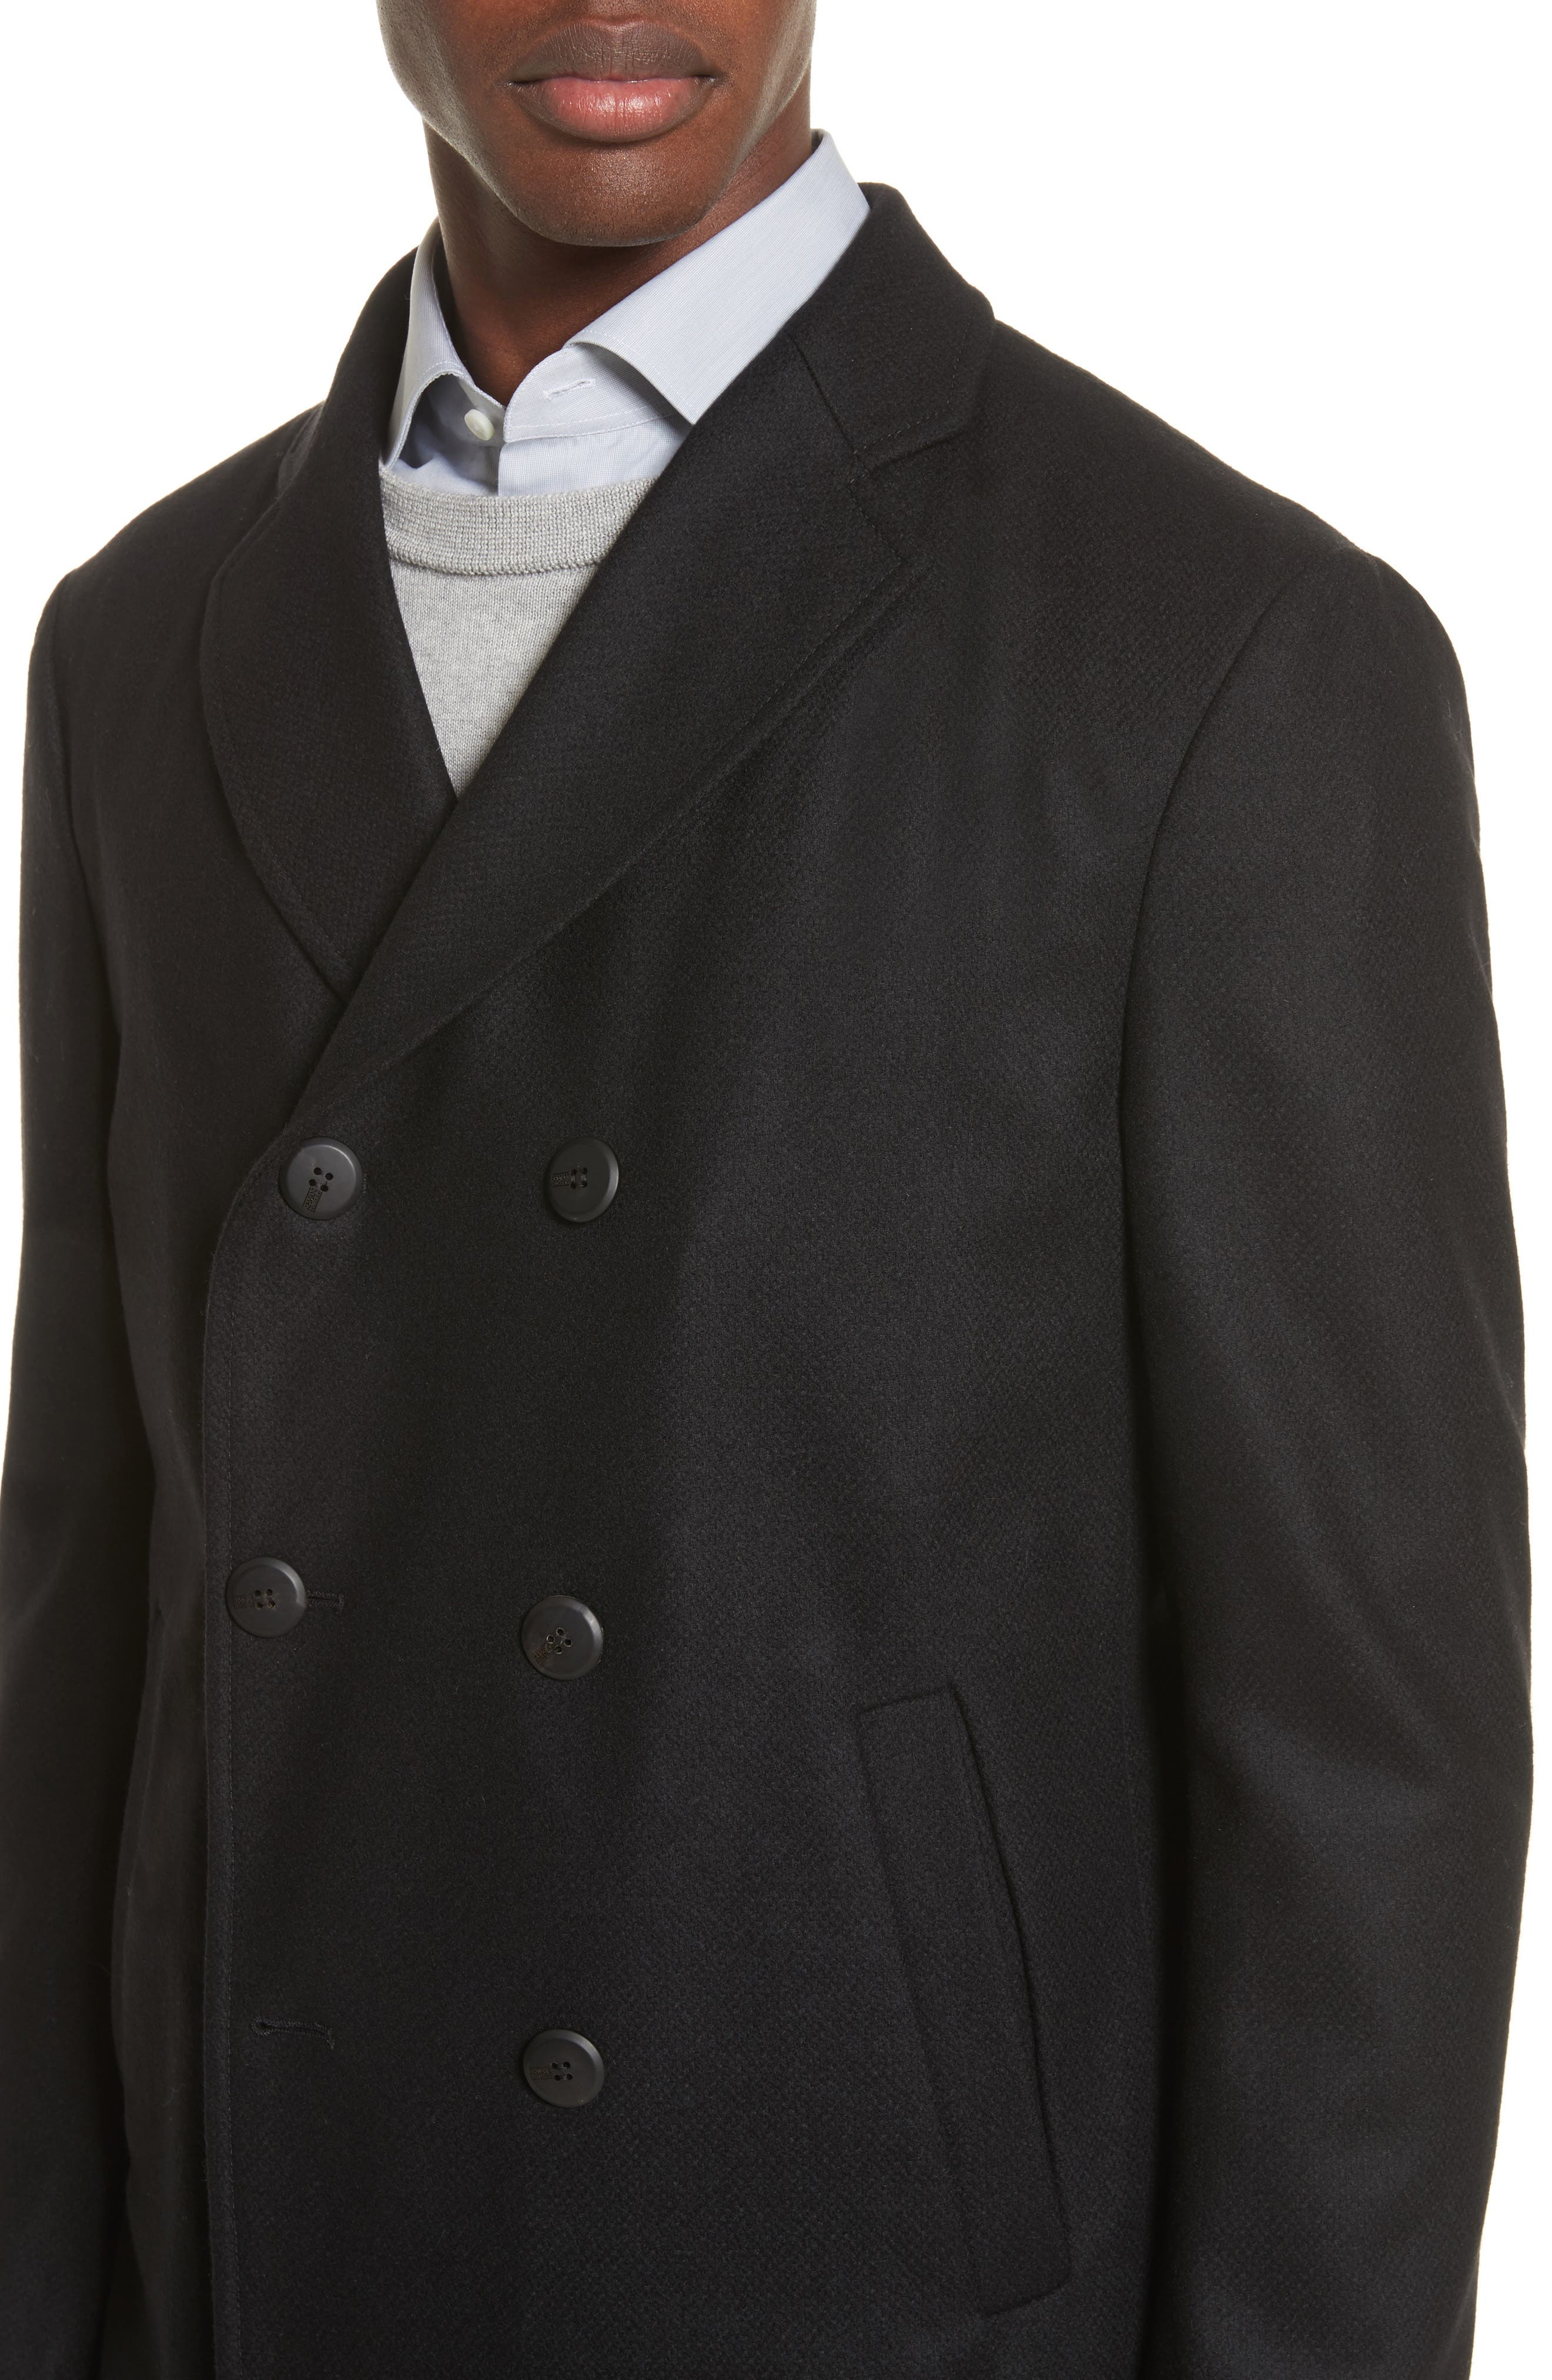 Double-Breasted Wool Topcoat,                             Alternate thumbnail 4, color,                             004